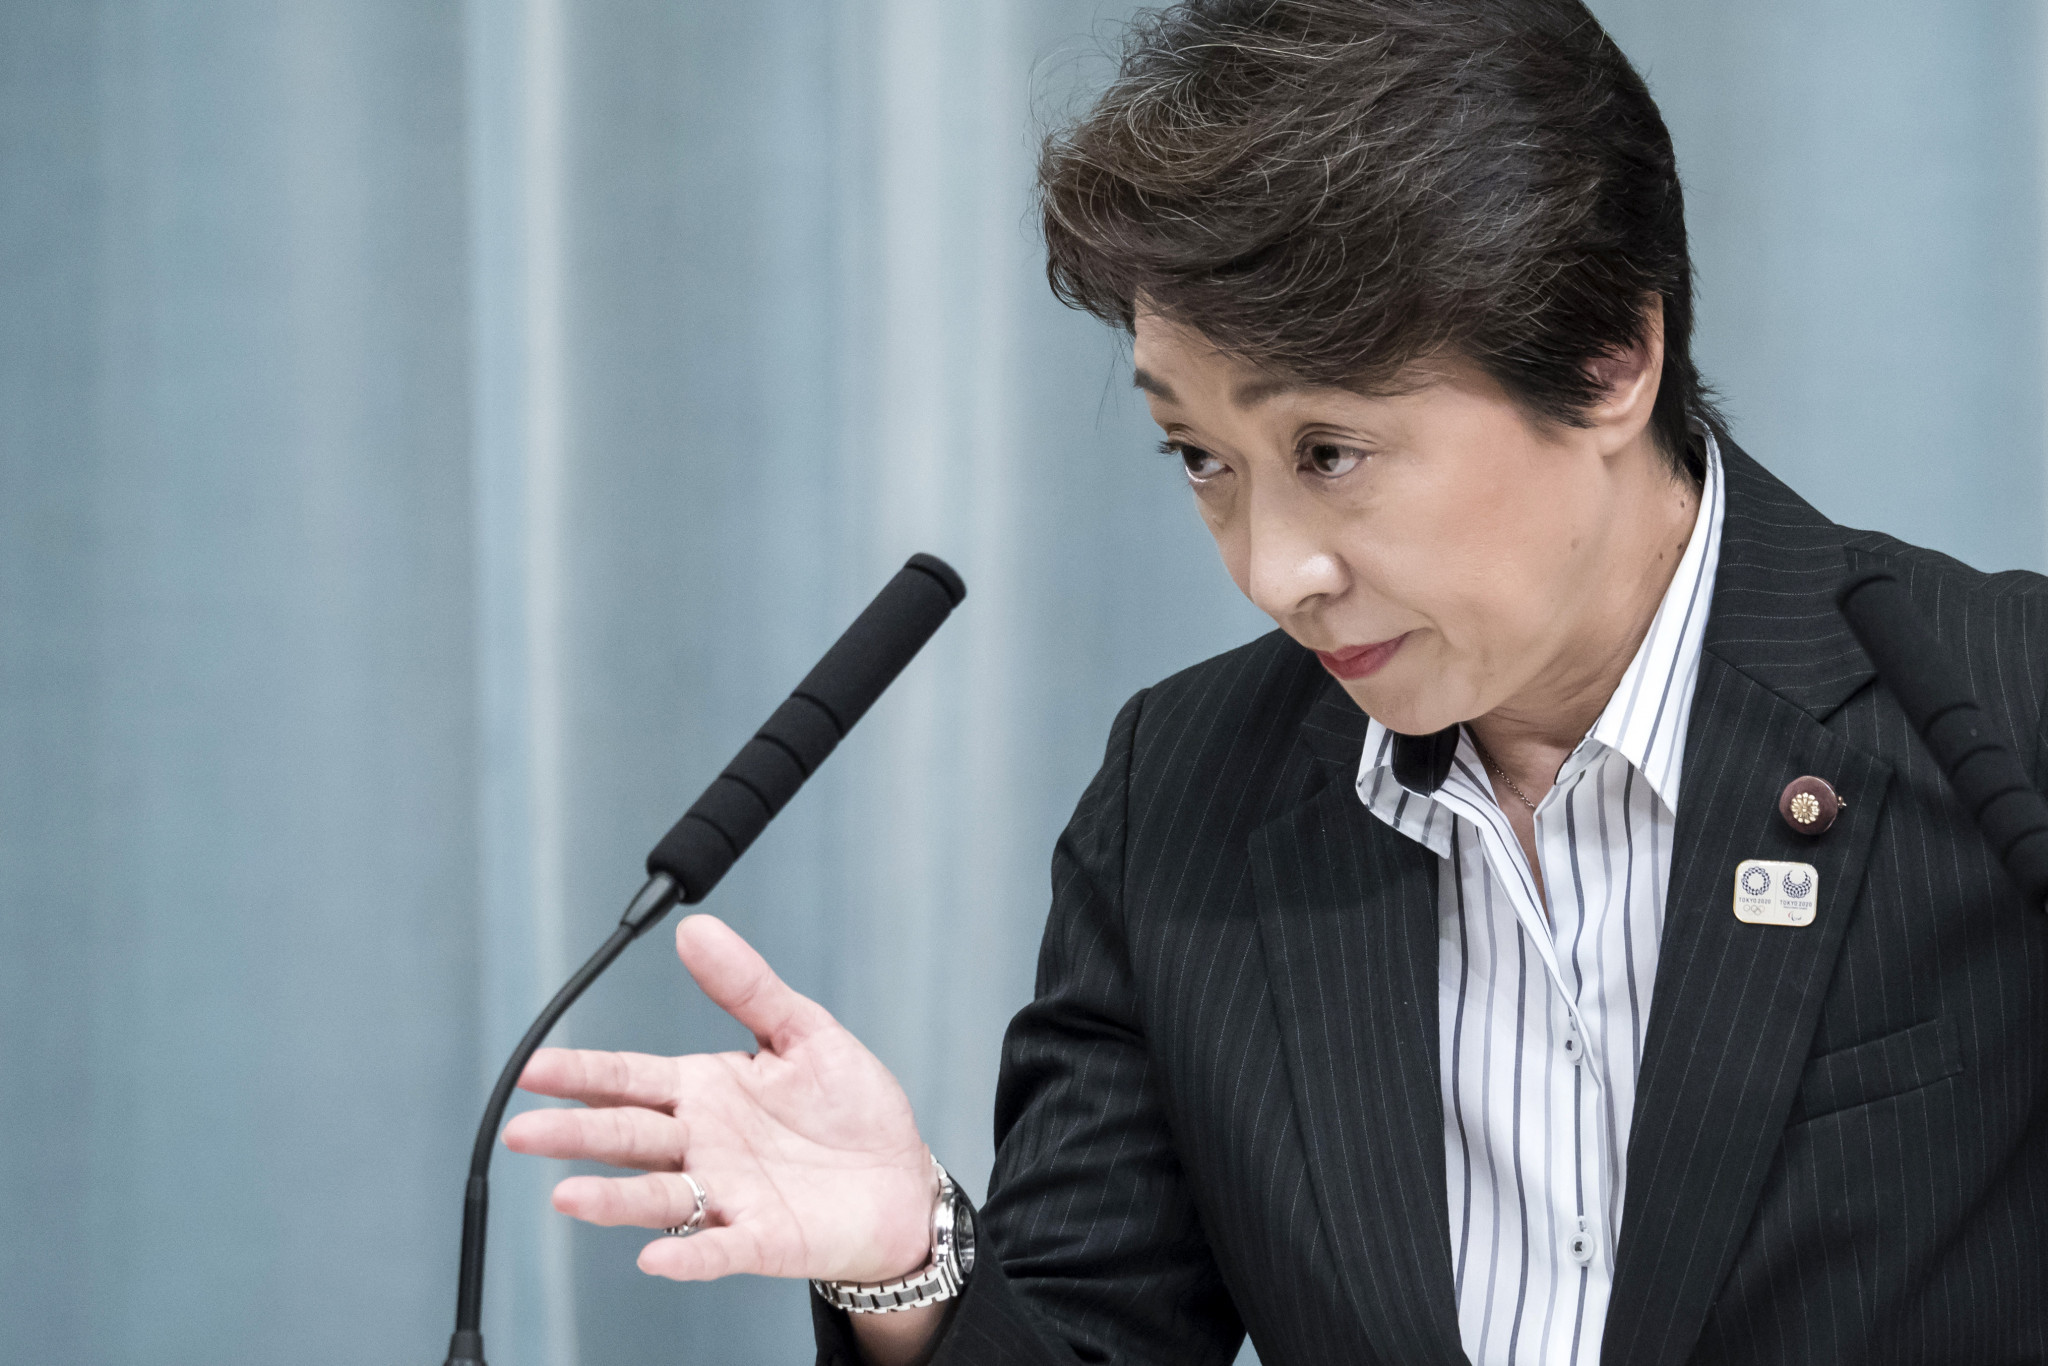 Japan's Olympics Minister Seiko Hashimoto has rejected claims the flag should be banned from Tokyo 2020 ©Getty Images